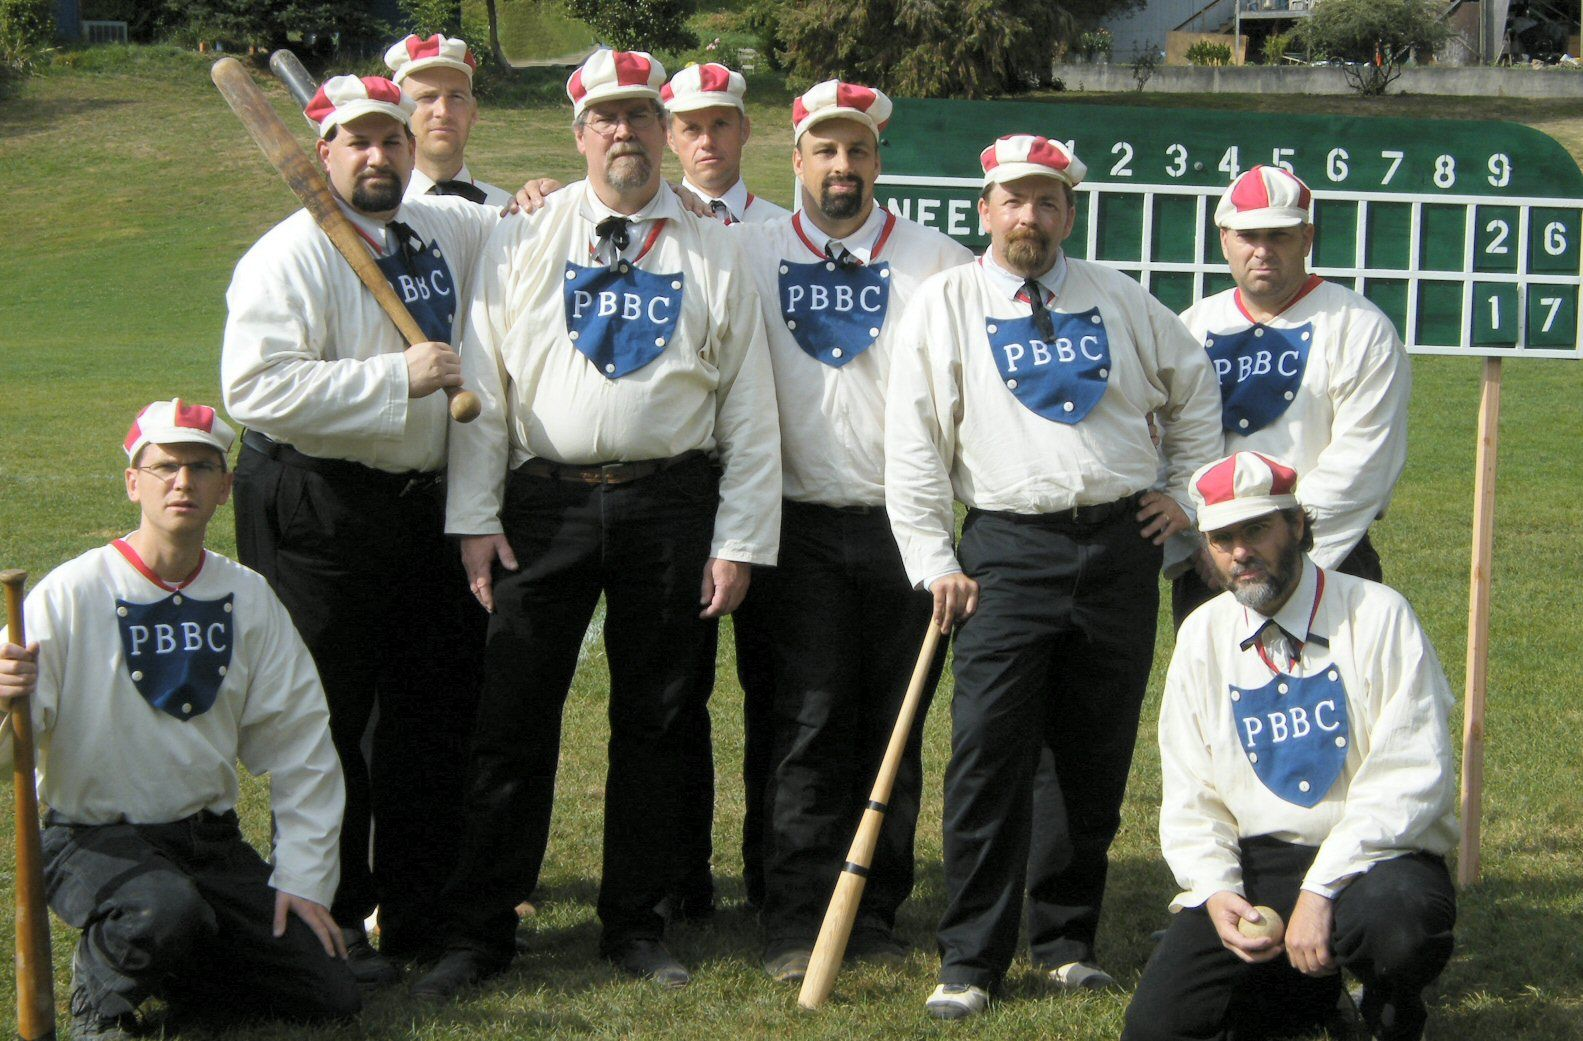 Pioneer Base Ball Club Ball Base